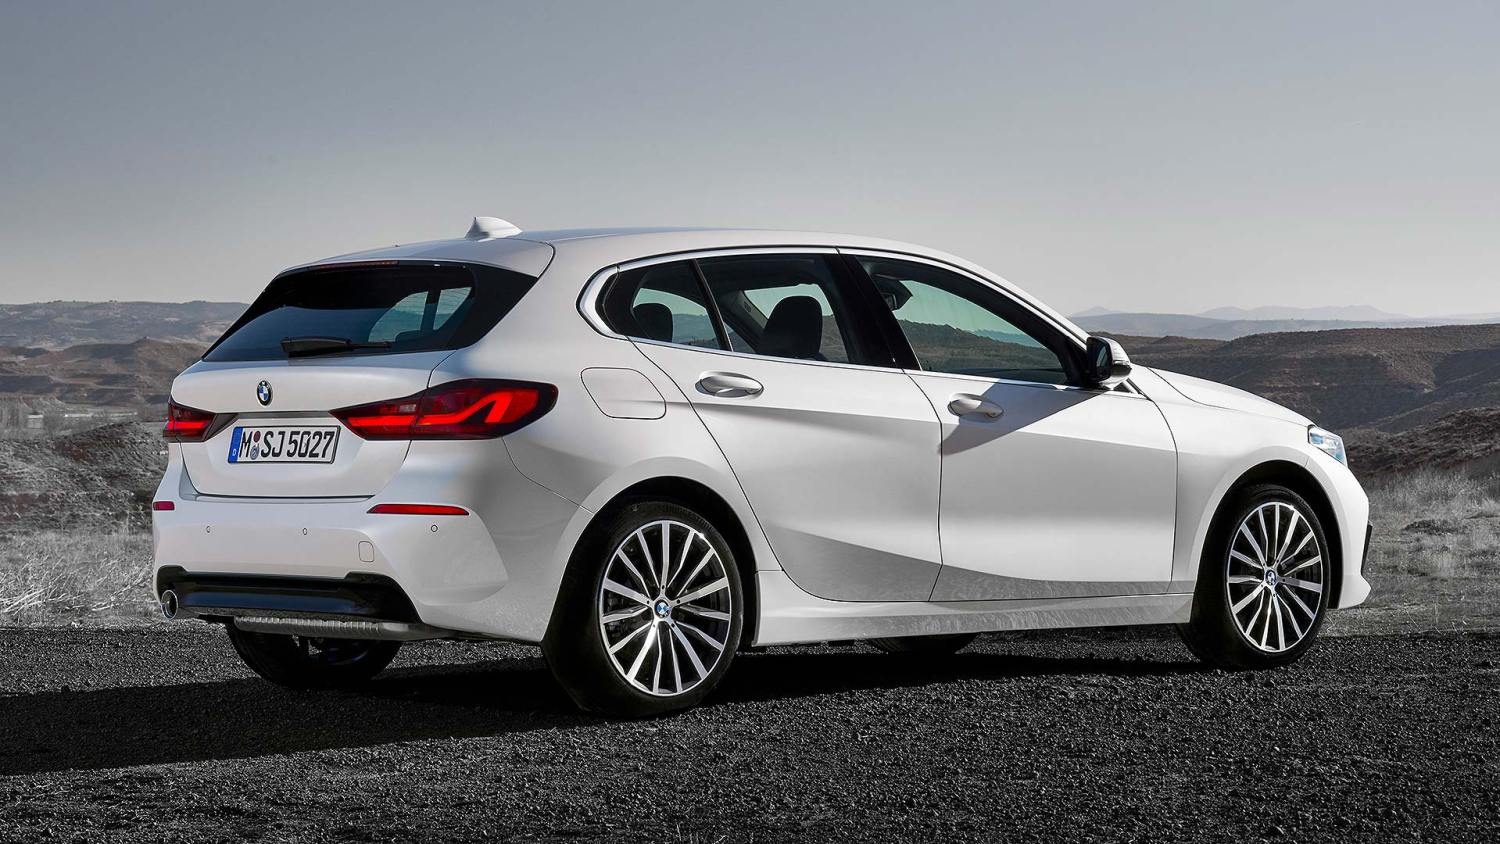 New Bmw 1 Series Revealed Full Details Of The 24 430 Premium Hatch